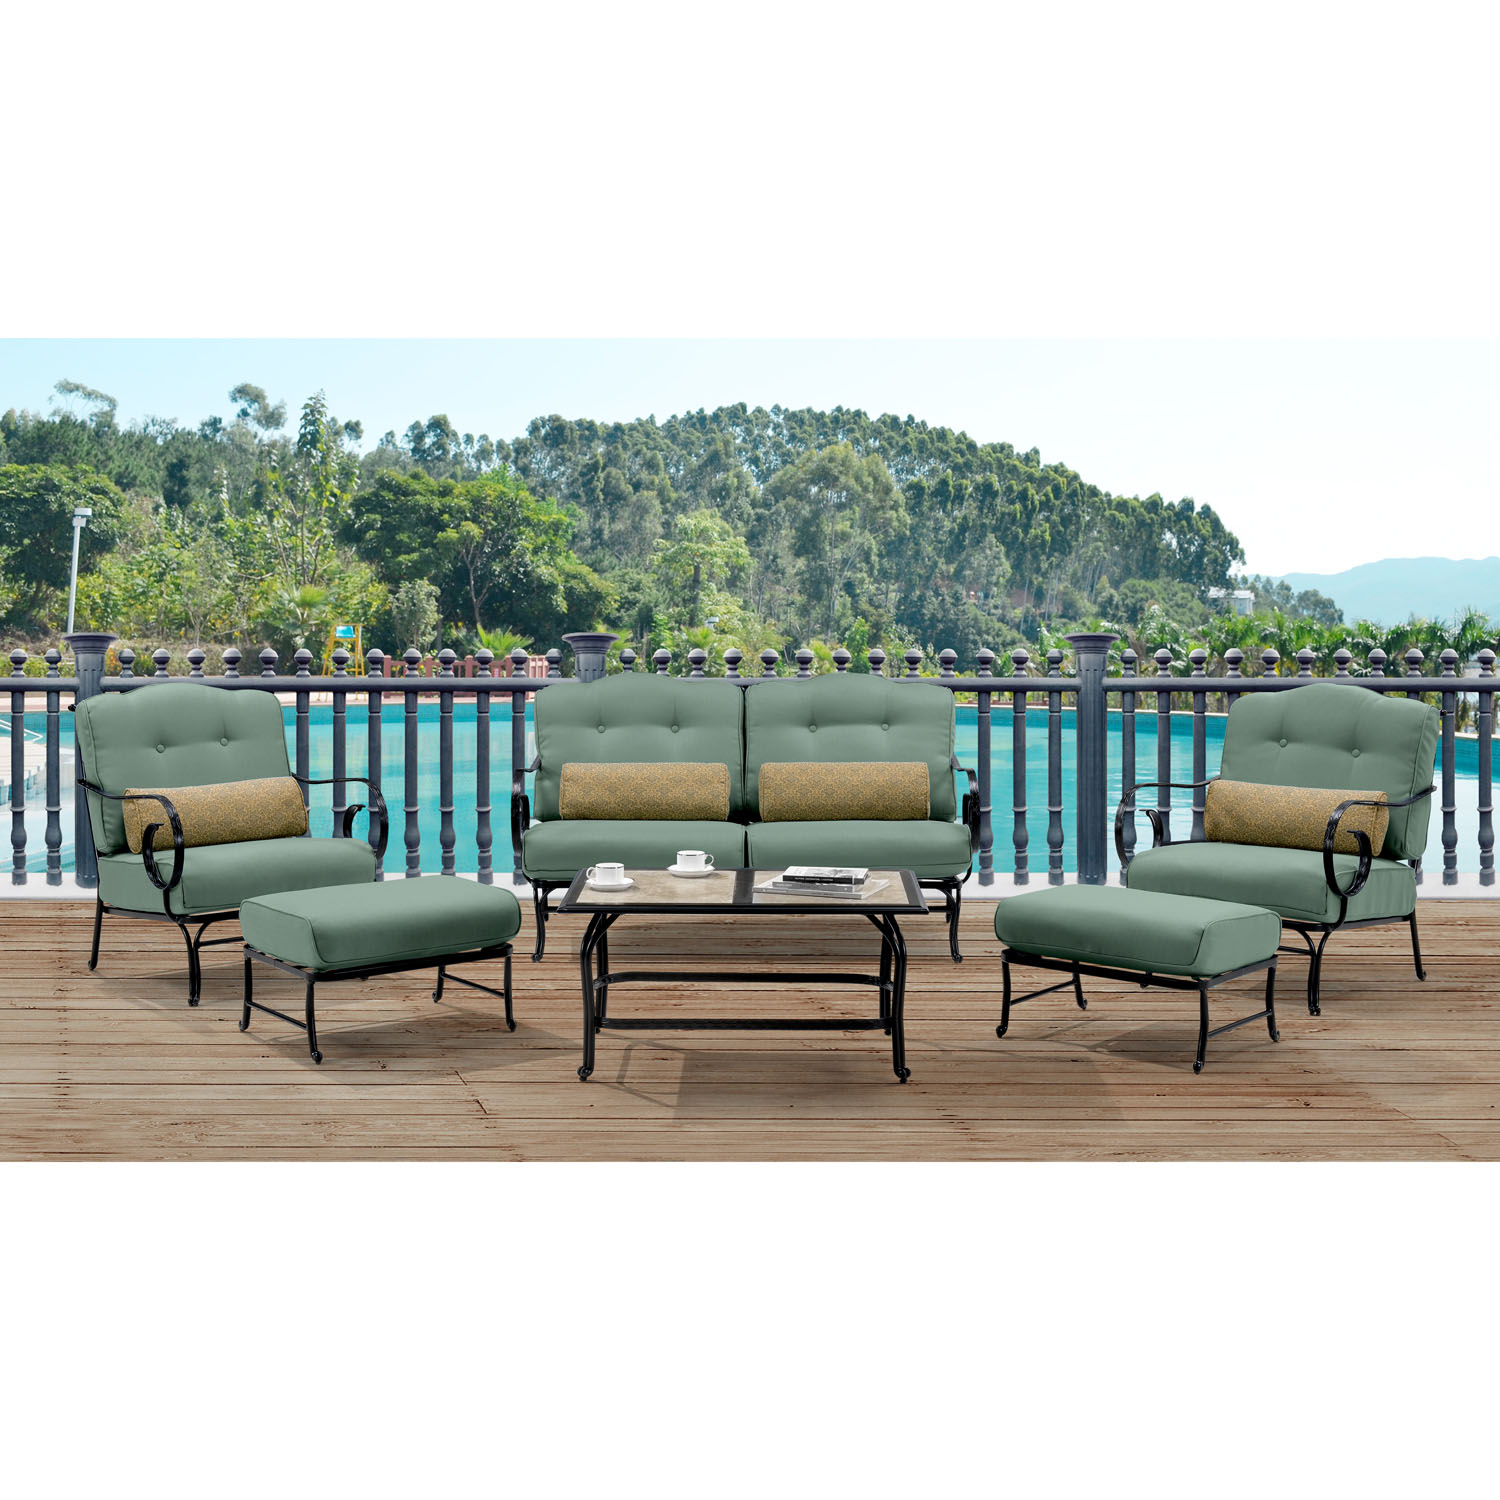 Tile Coffee Table Set: Oceana 6PC Seating Set In Ocean Blue With Tile-top Coffee